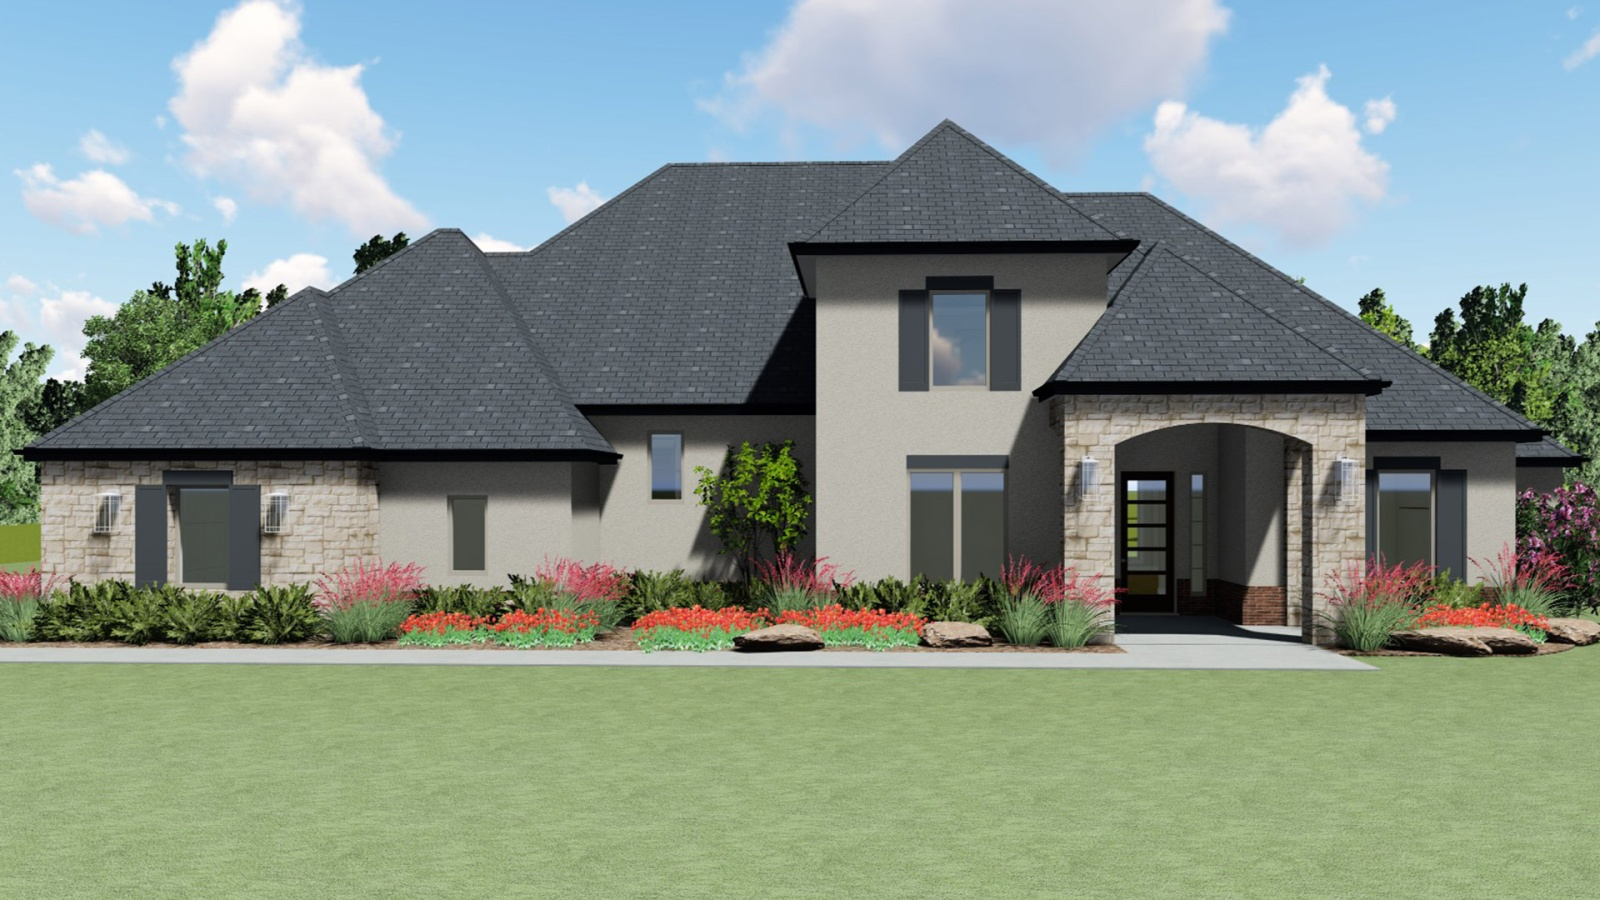 4 Bedrooms Bedrooms, ,3 BathroomsBathrooms,Custom Home,Home Plans,1019